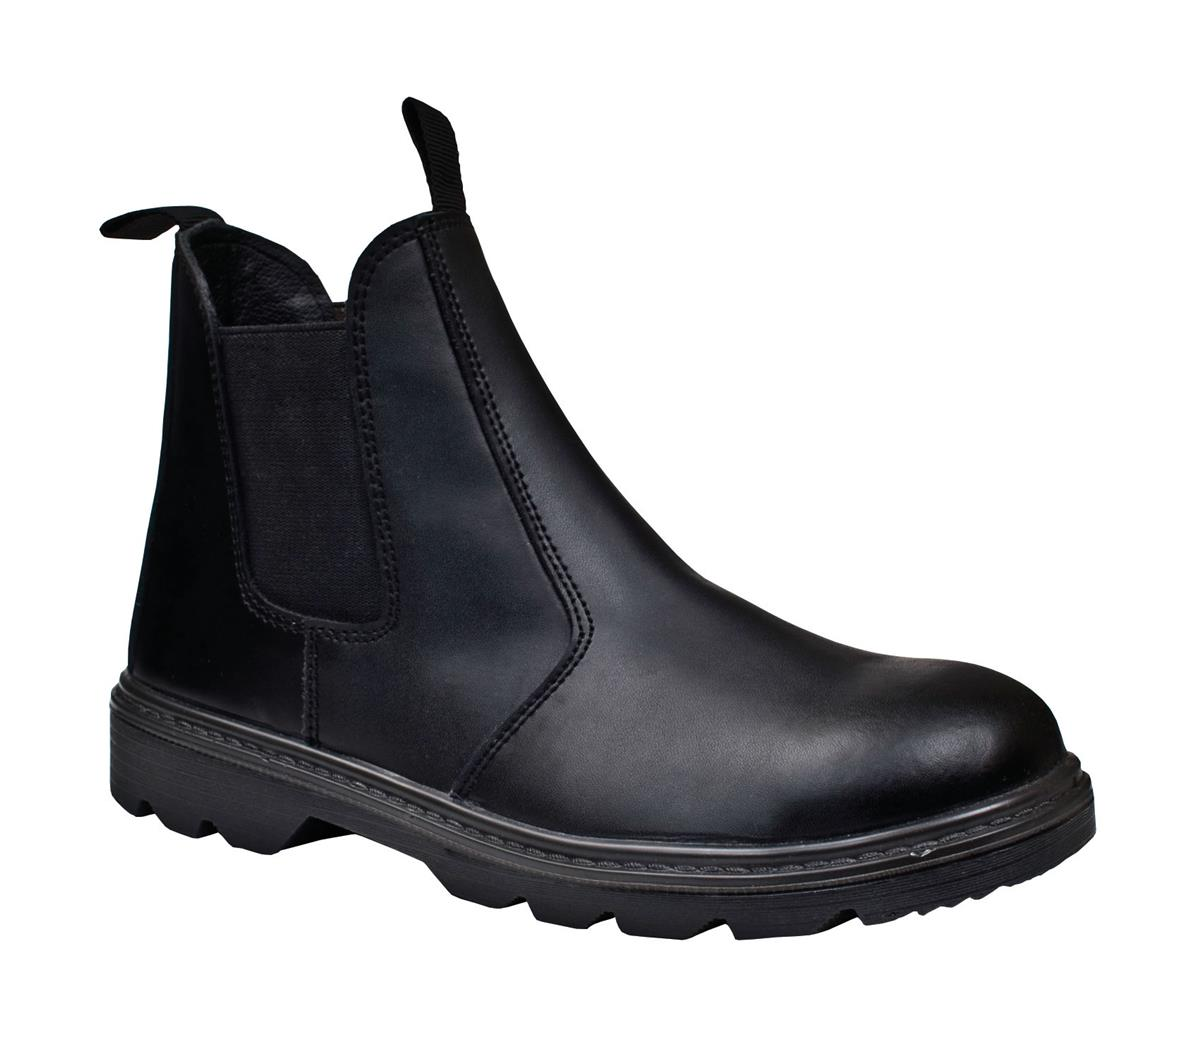 ST Dealer Boot Leather Pull-On Design with Safety Toecap Size 8 Black Ref 93273 *Approx 3 Day Leadtime*